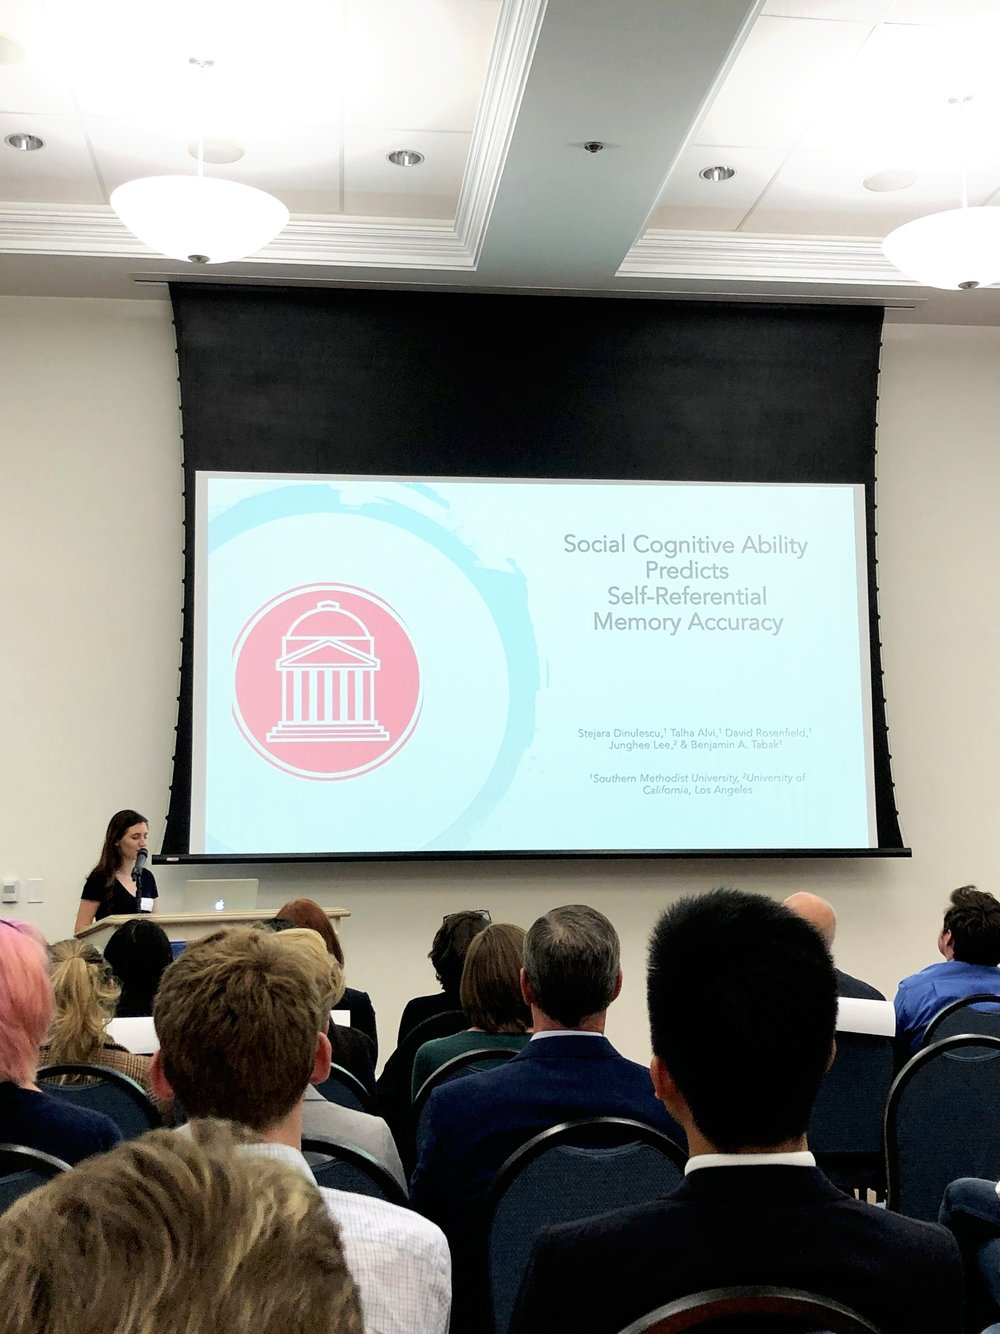 - In April, Senior Undergraduate Stejara Dinulescu presented our paper, currently under review, examining the association between social cognitive ability and self-referential processing. Congratulations to Stejara on being one of the few scholars selected to give a talk and on delivering a wonderful presentation